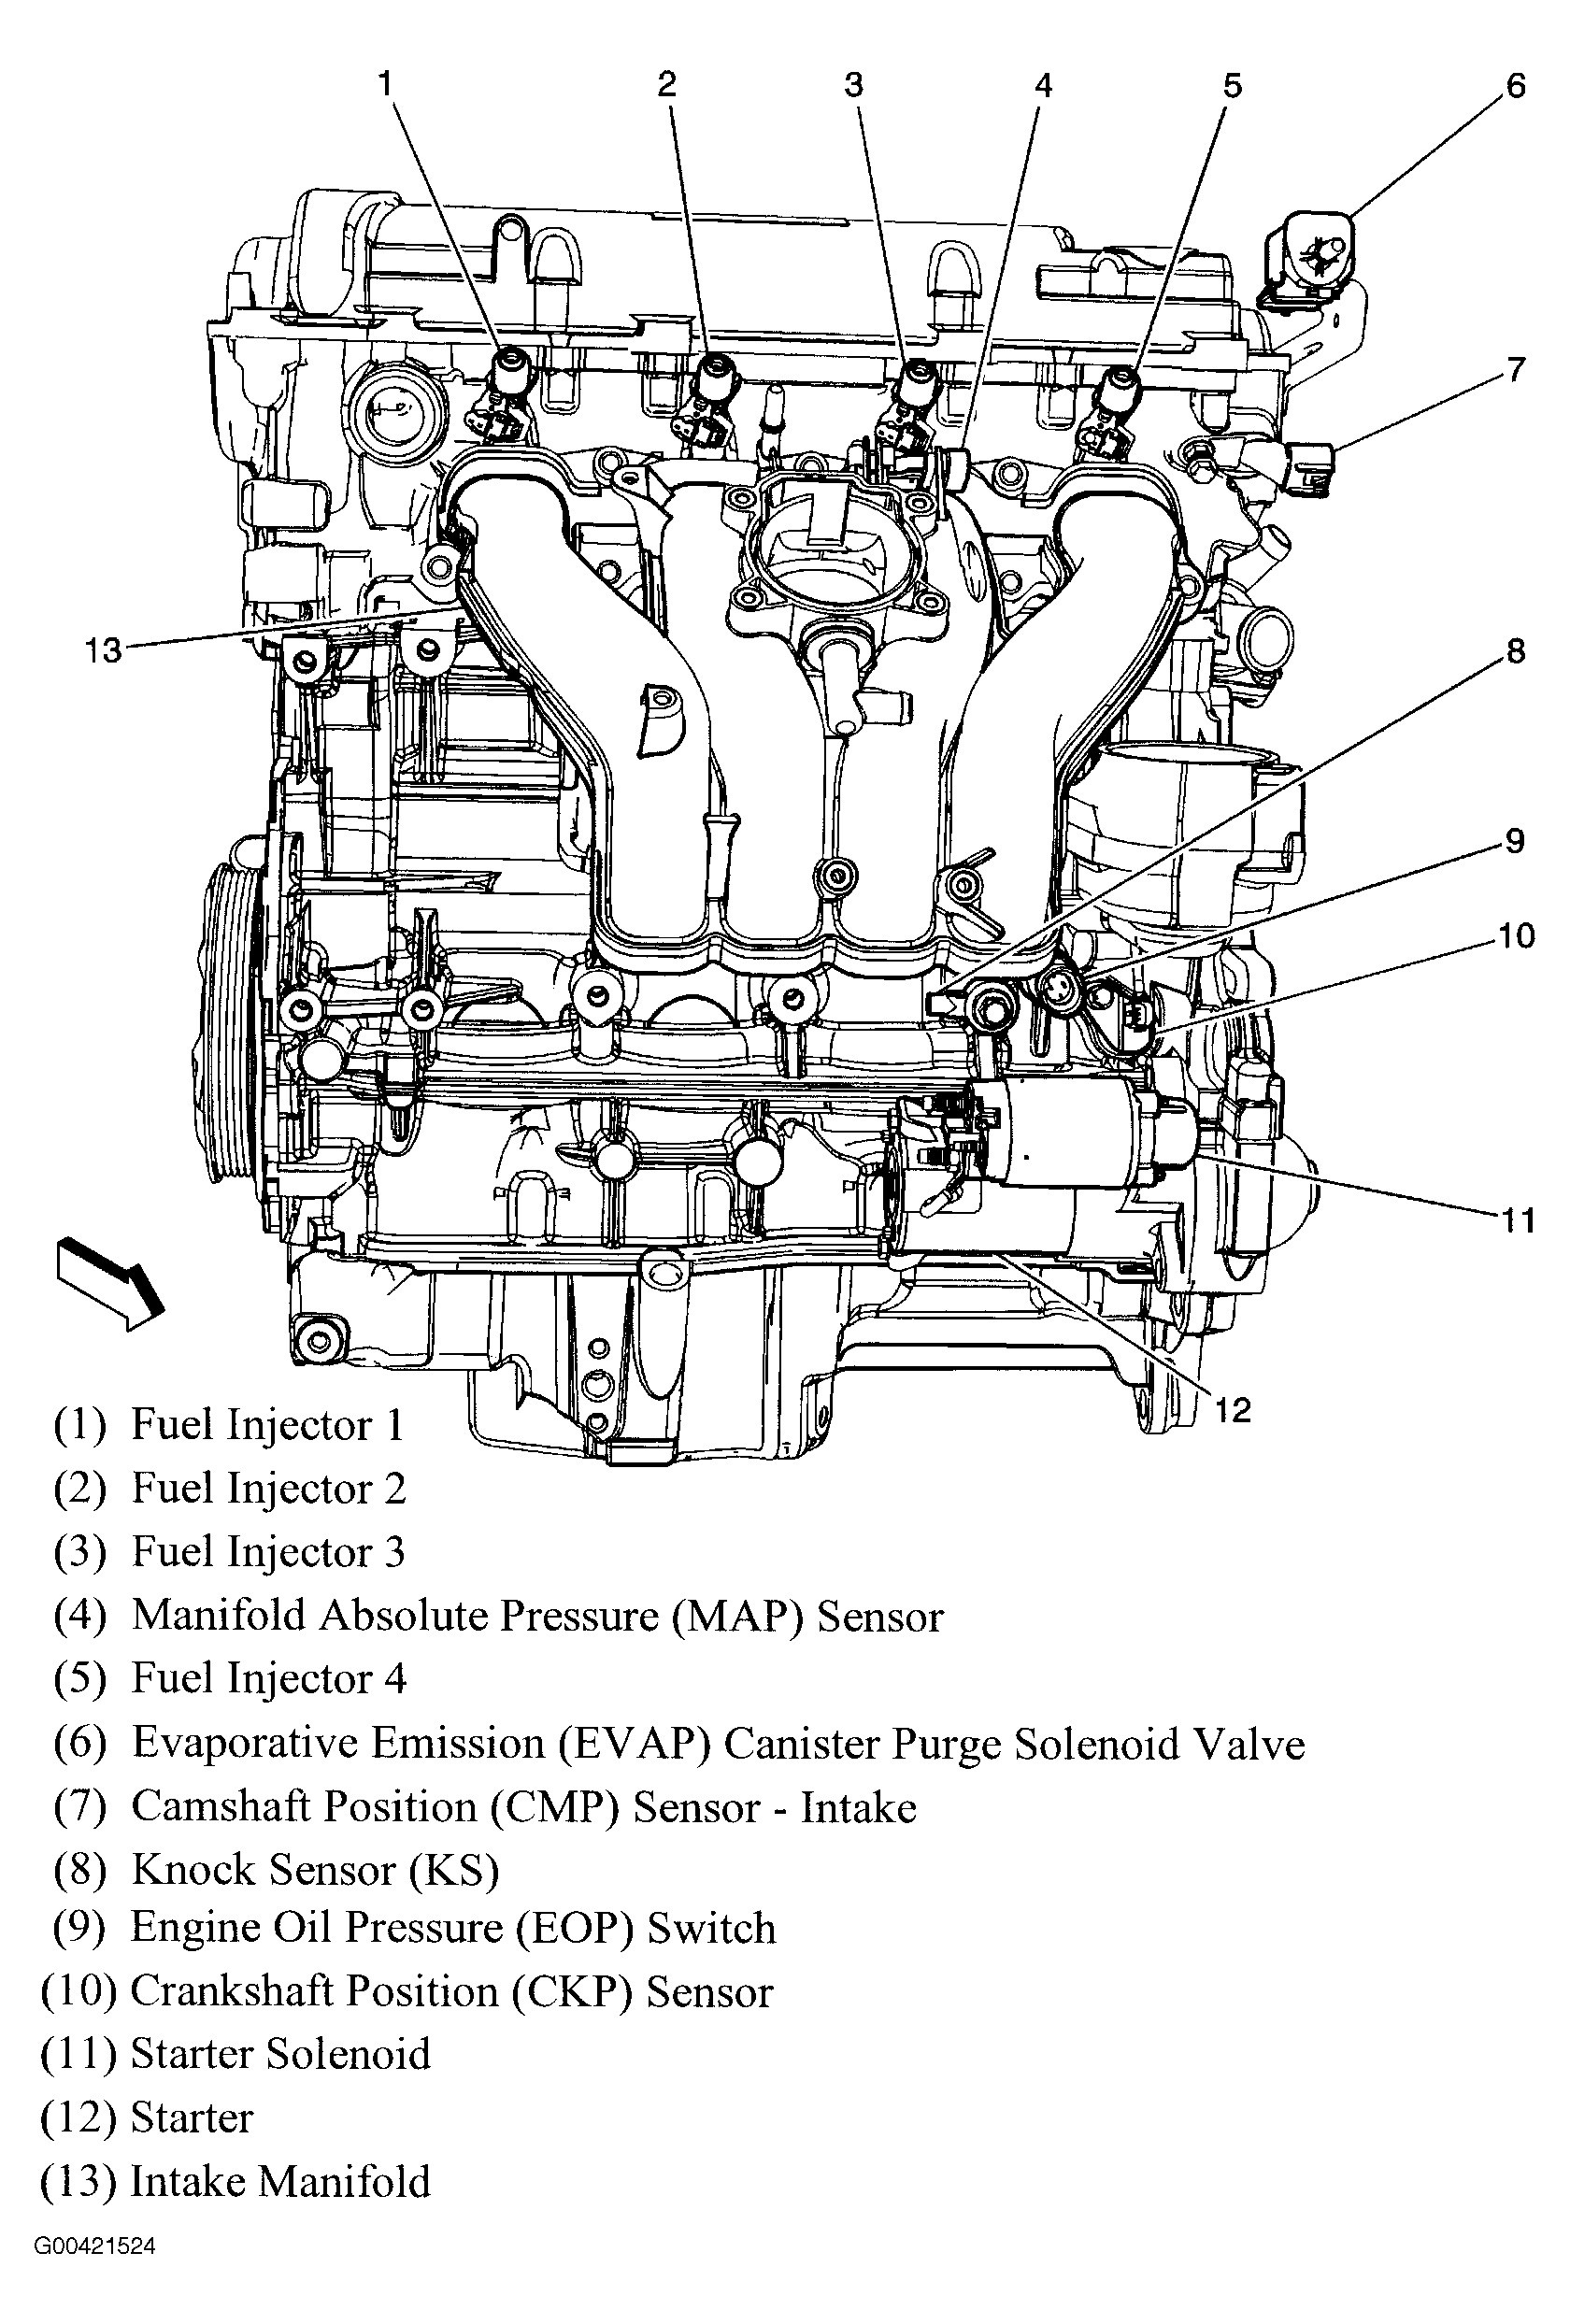 09 Chevy 4.8 Injector Wiring Diagram